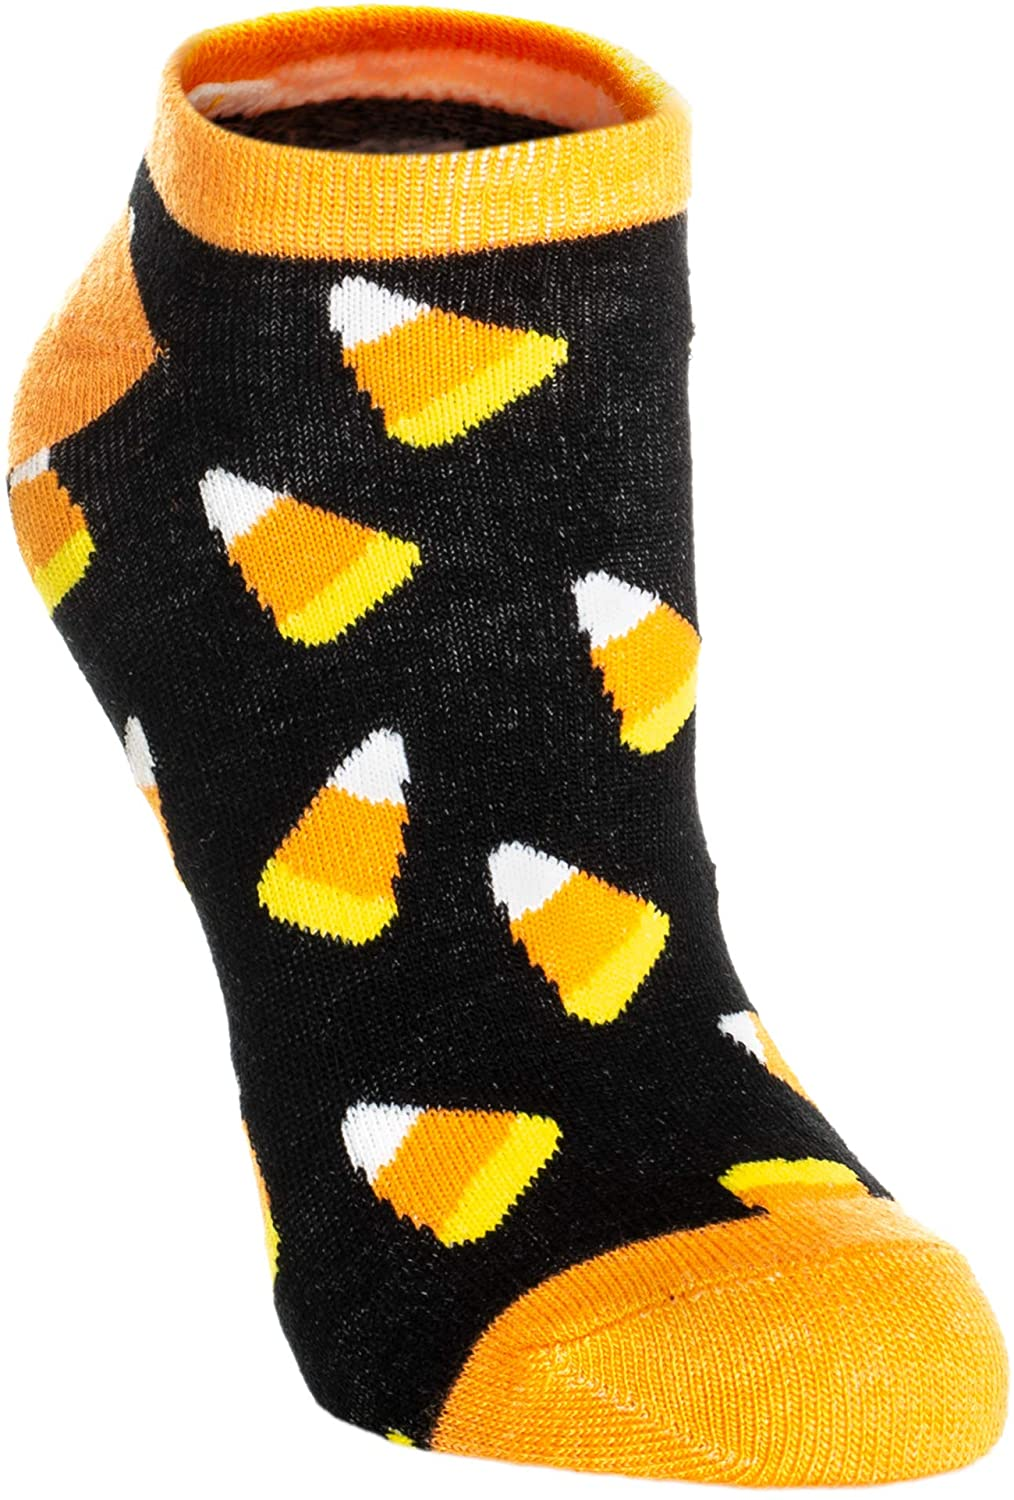 Candy Corn Patterned Women's One Size Polyester Stretch Halloween Ankle Socks